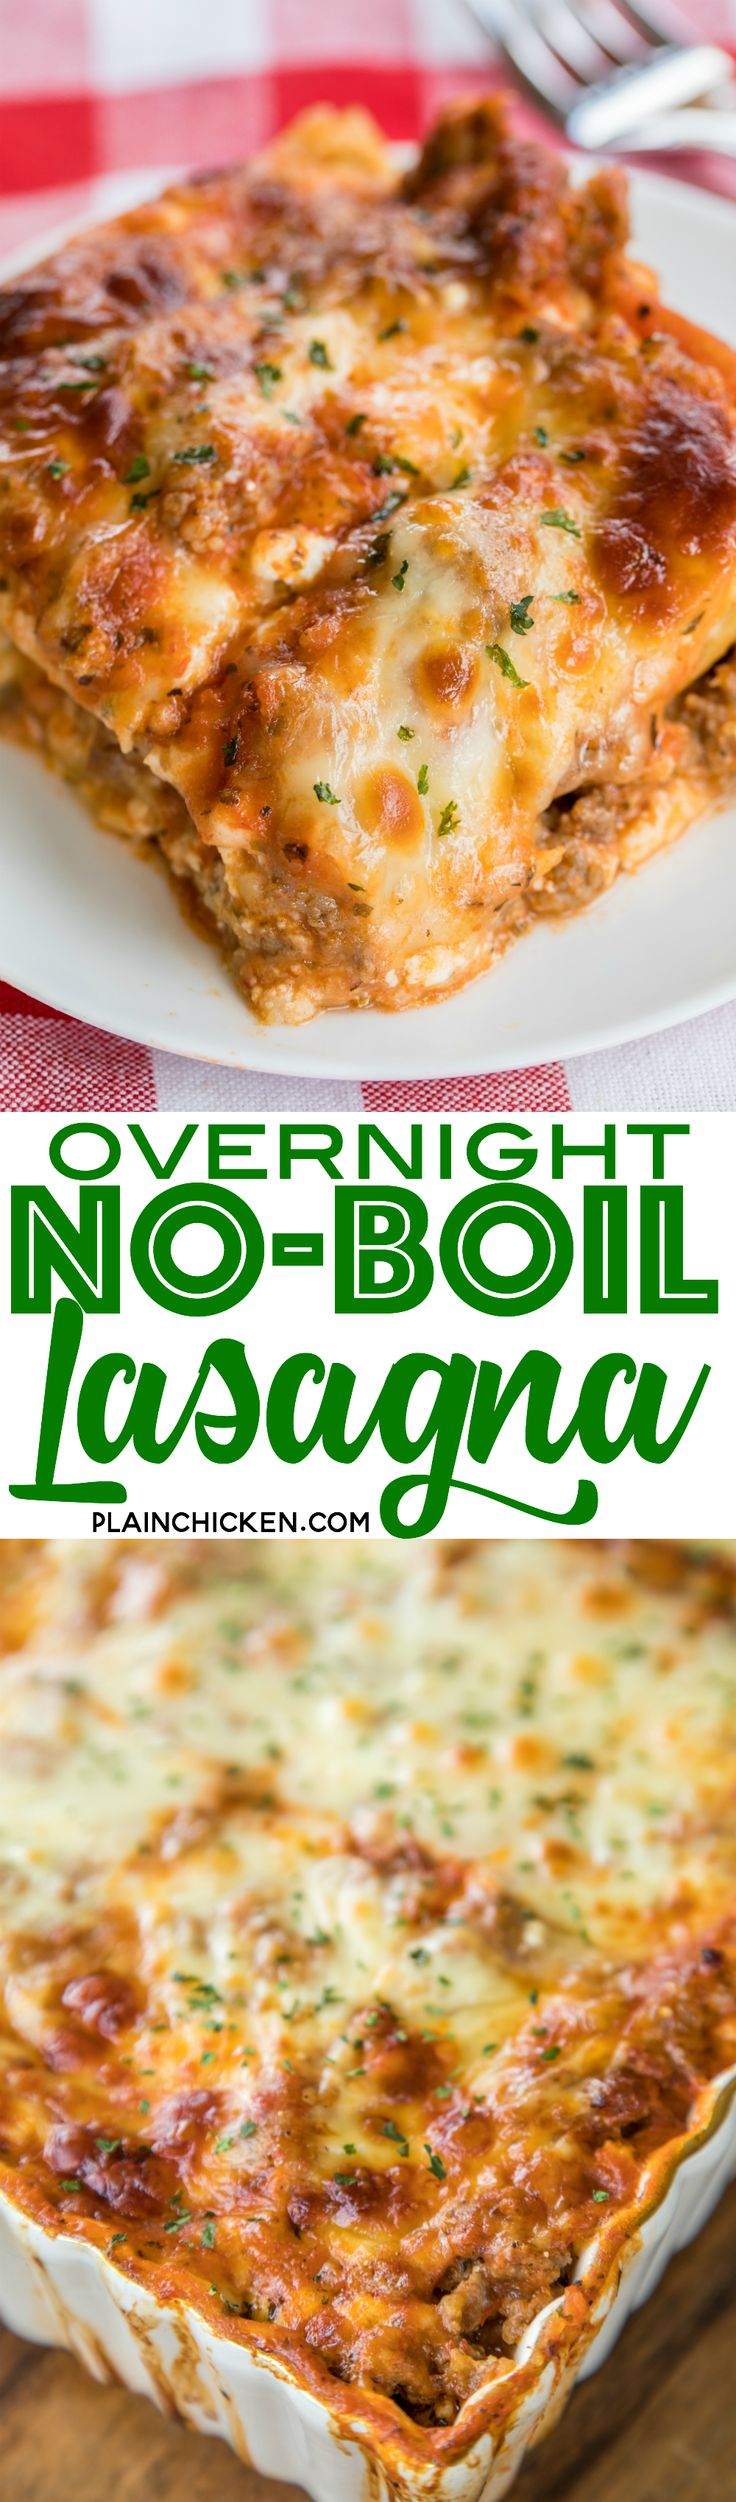 "Overnight No-Boil Lasagna - seriously THE BEST lasagna we've ever eaten!!! SO easy to make and you don't have to boil your noodles! The noodles ""cook"" overnight and are perfect. Lasagna noodles, cottage cheese, italian sausage, spaghetti sauce, water, mozzarella, garlic and parmesan. Serve with some garlic bread and a salad. Can freeze leftovers for later. We LOVE this lasagna casserole recipe!!! #lasagna #casserolerecipe #lasagnarecipe #pastarecipe"